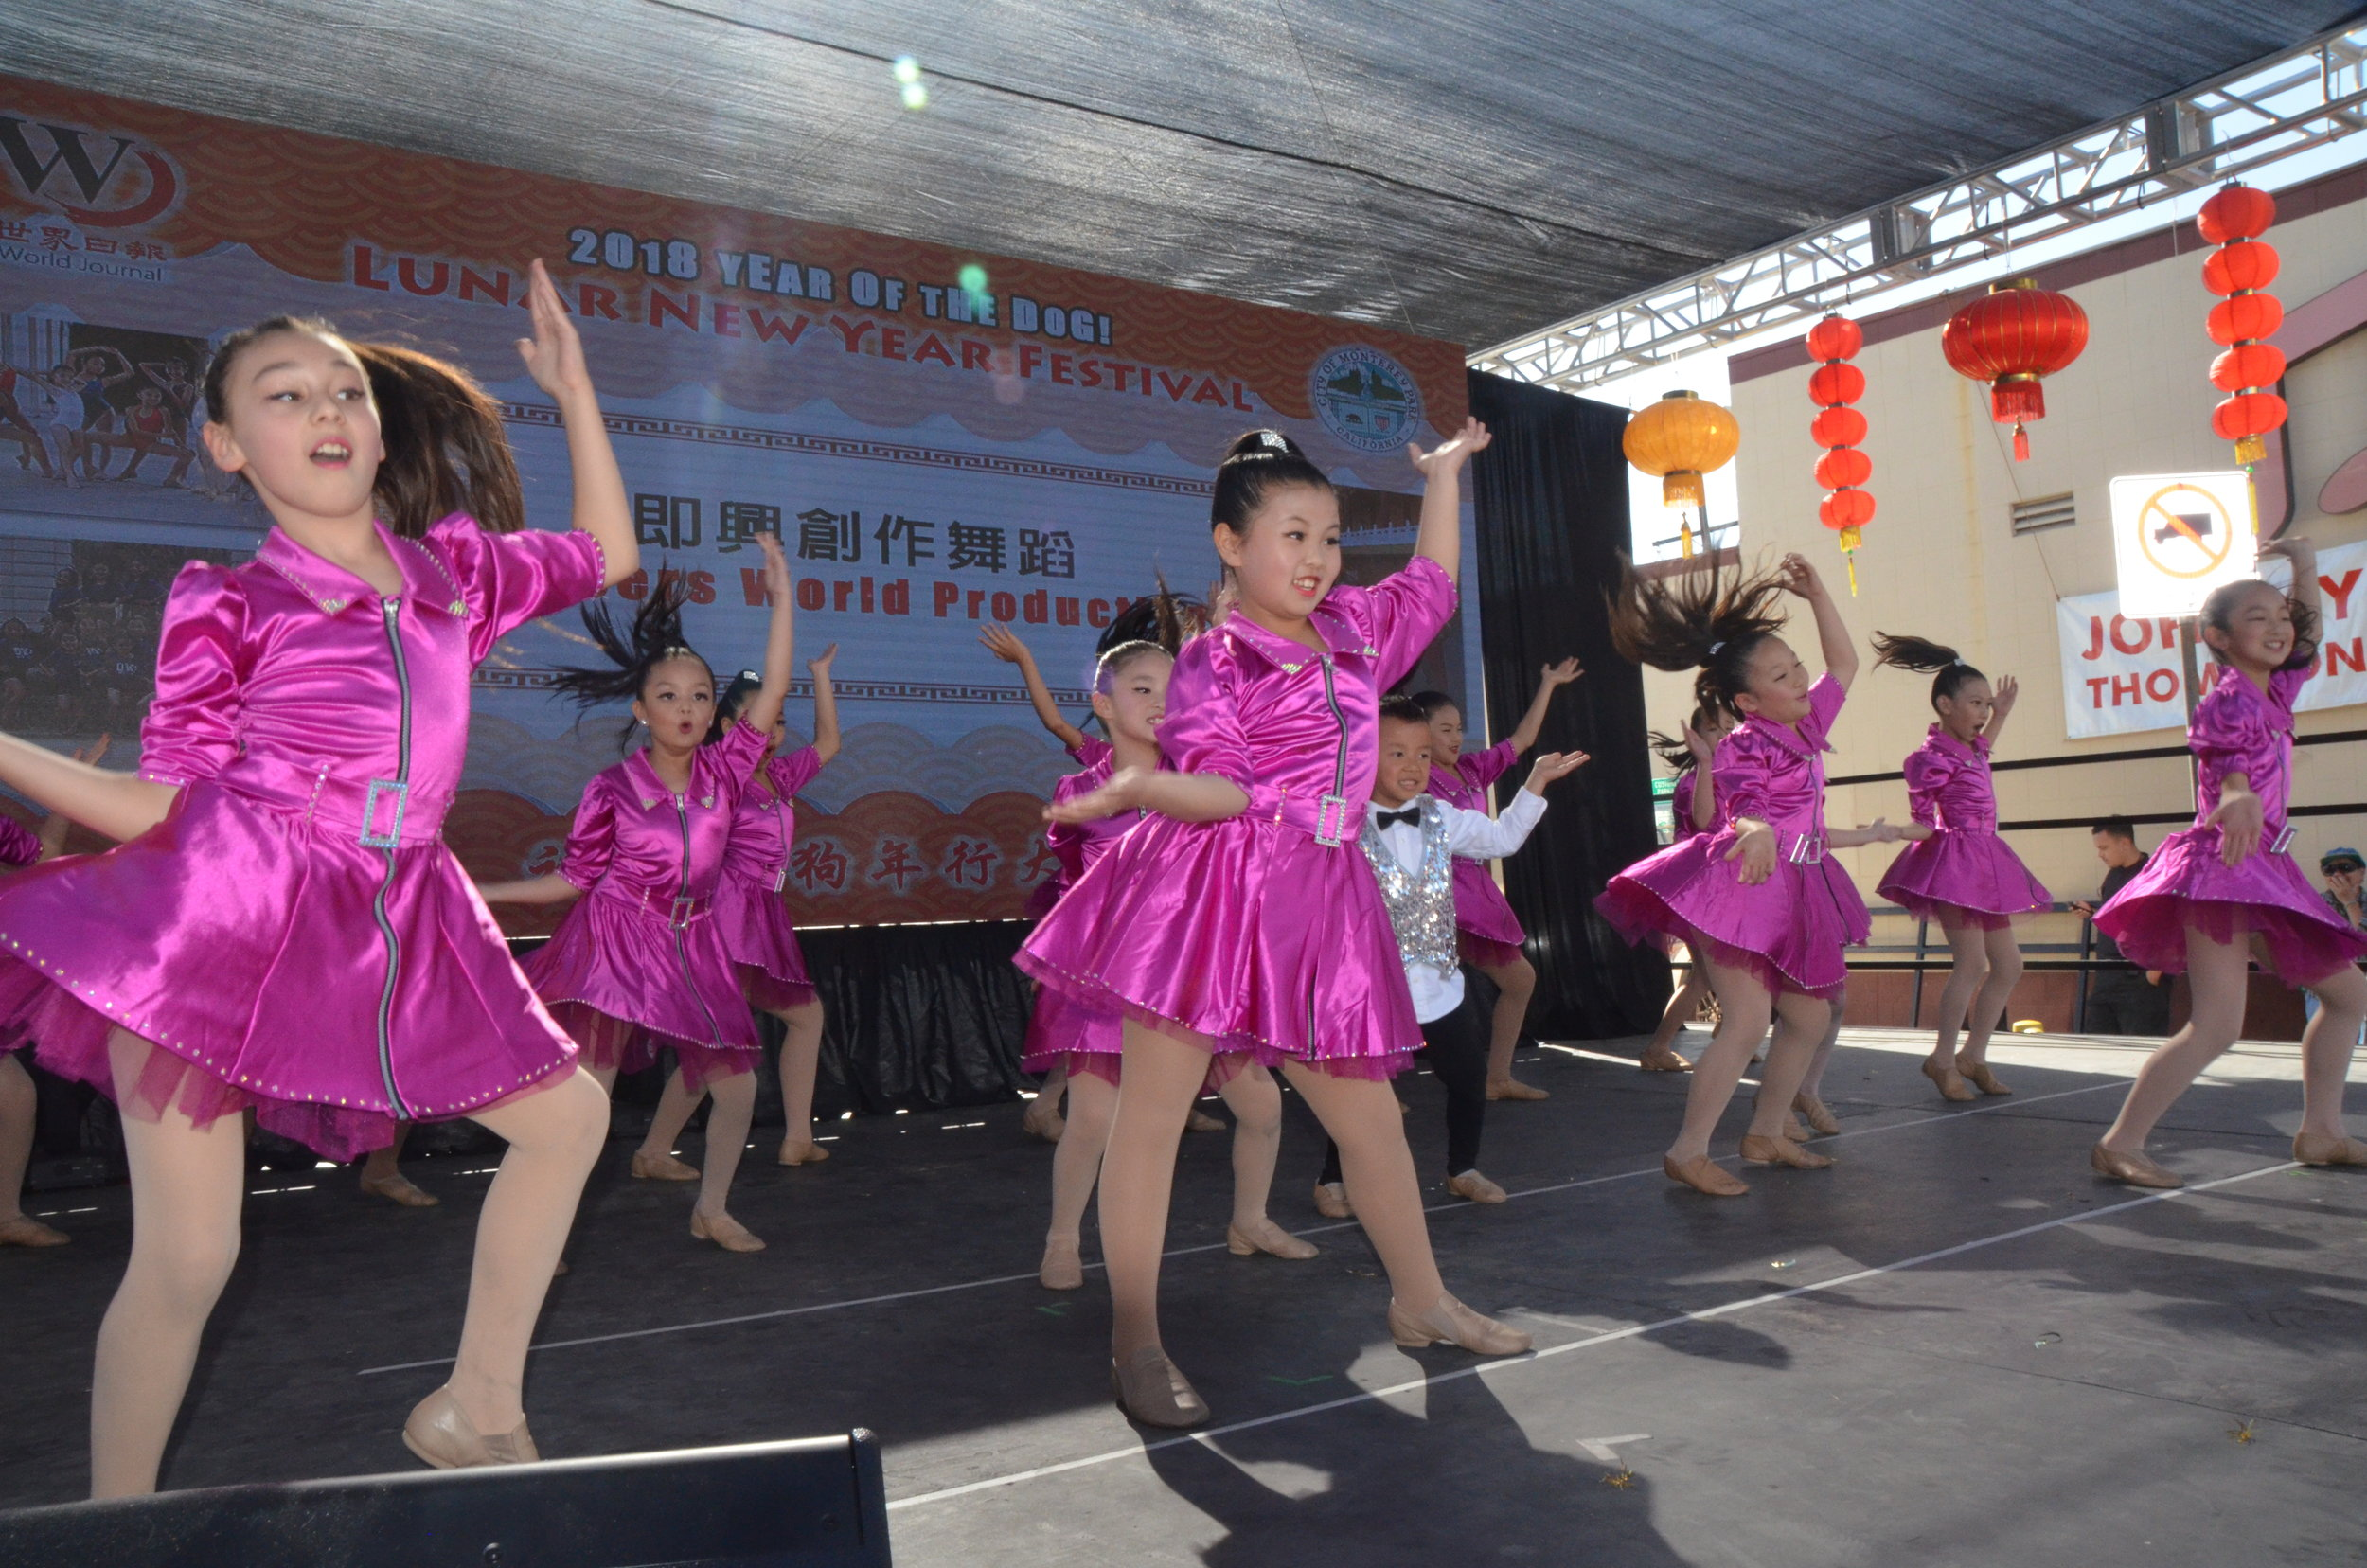 Folk Dance Performances at the Lunar New Year Festival.